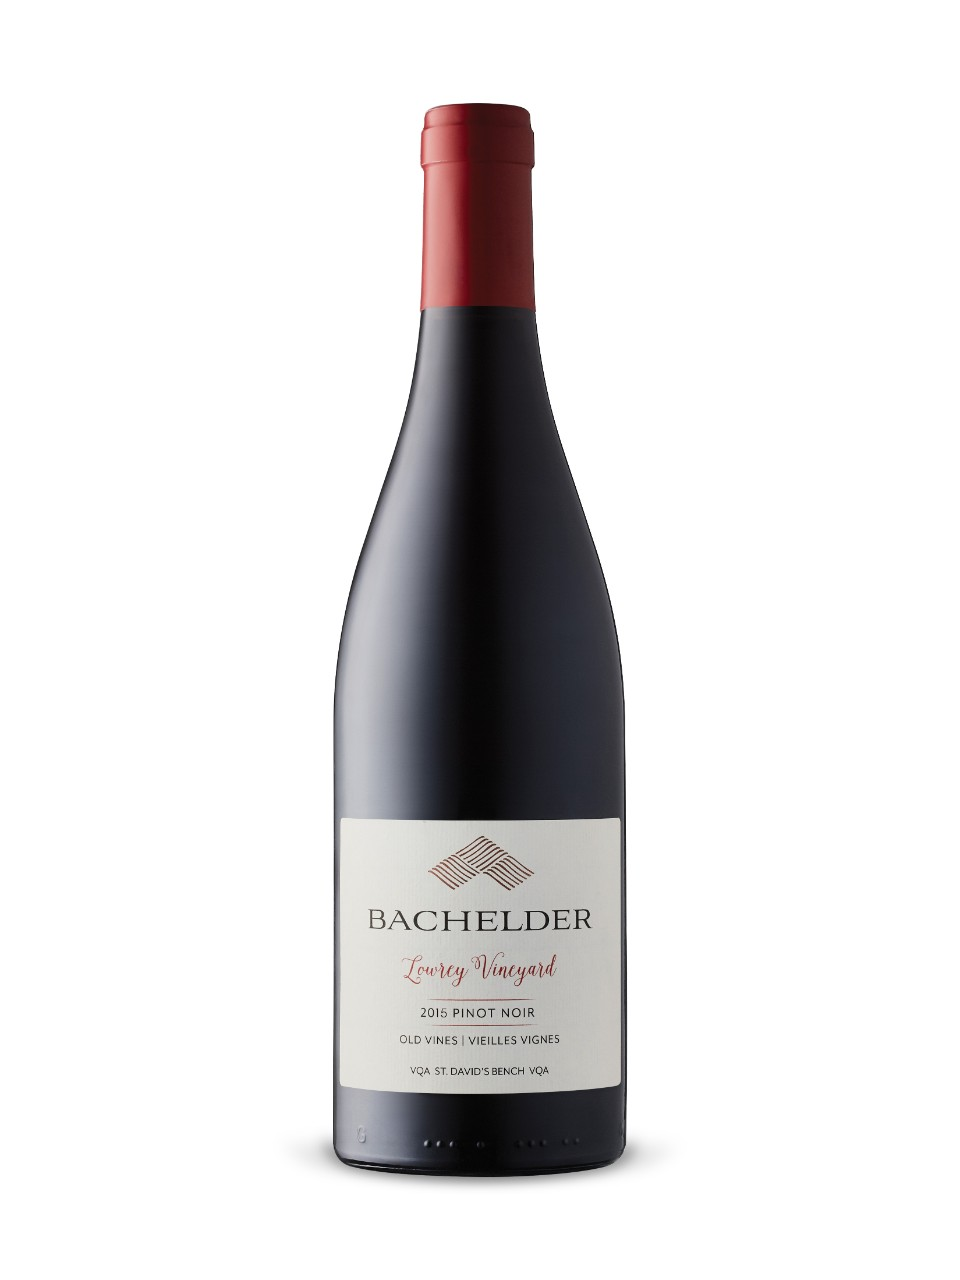 Bachelder Lowrey Vineyard Old Vines Pinot Noir 2014